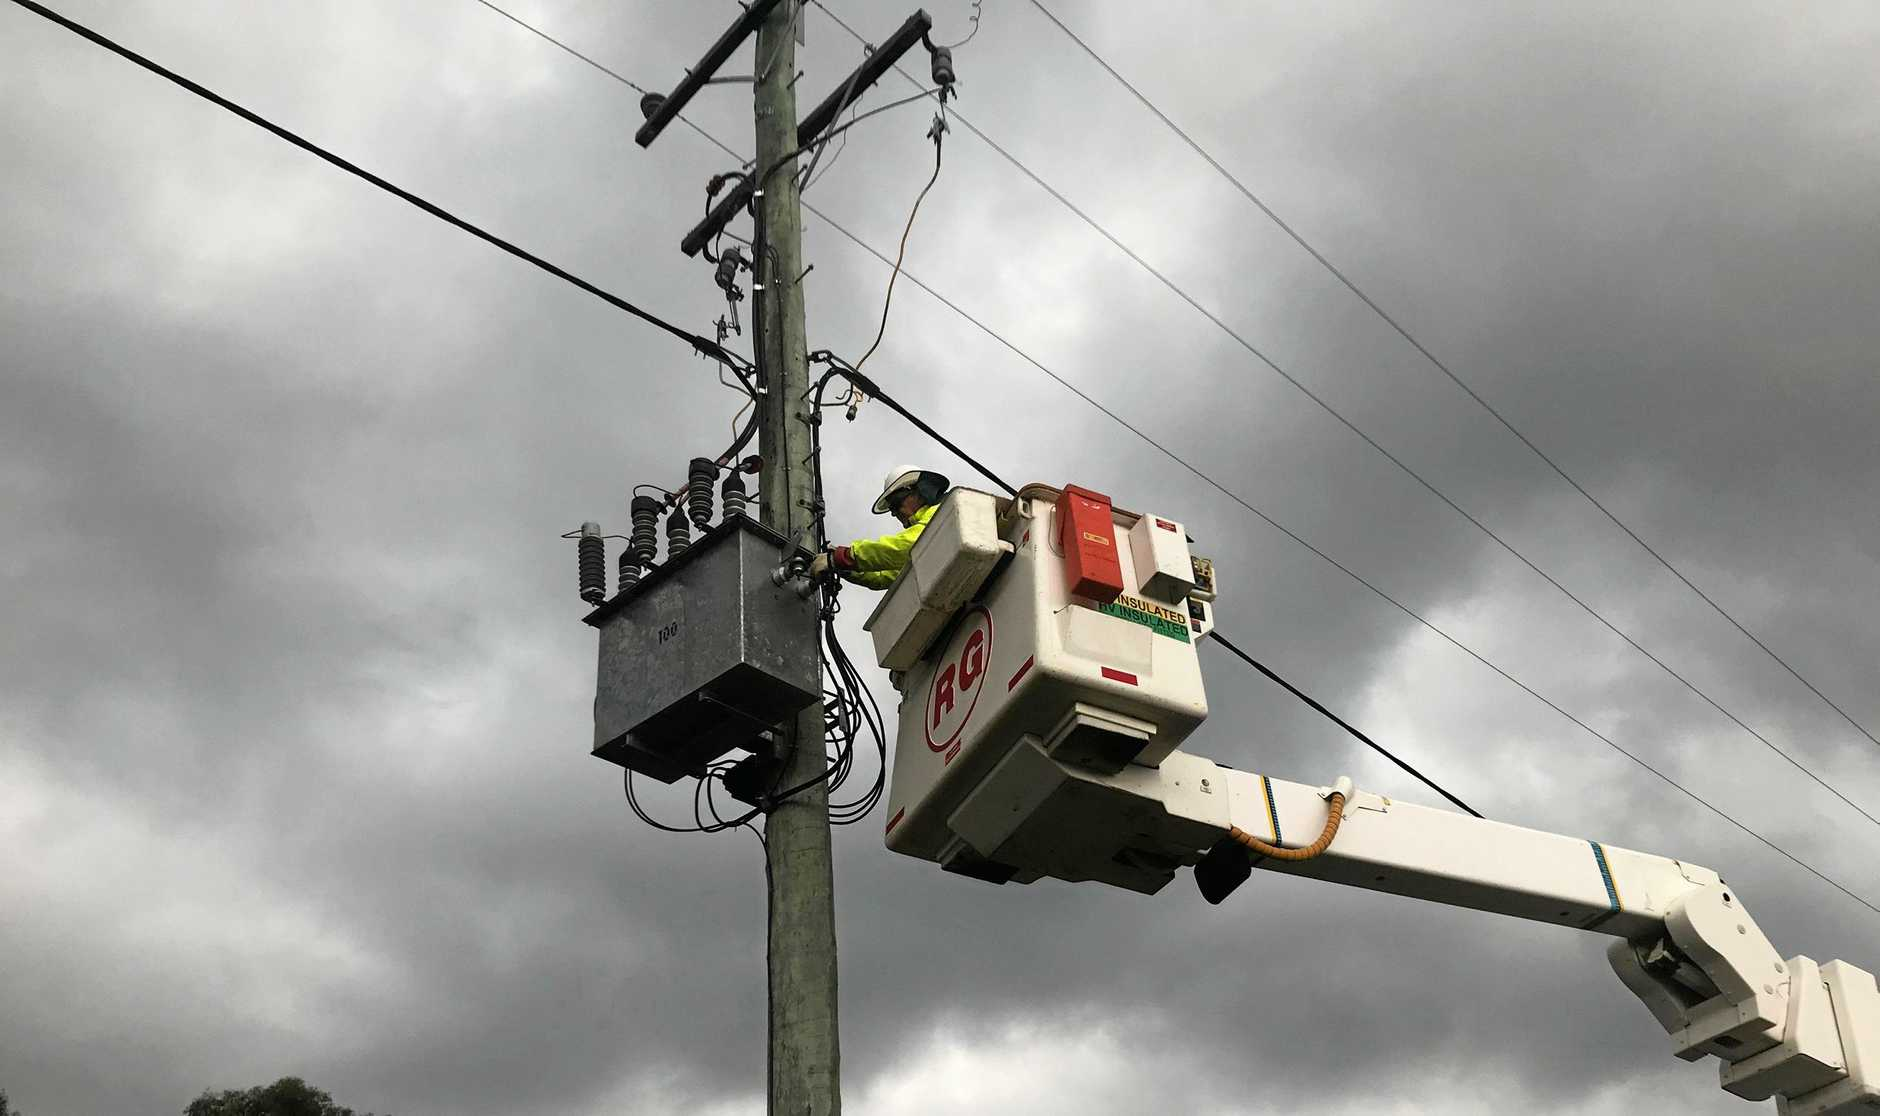 POWER OUTAGES: The Gympie region is experiencing power outages with 1334 homes left in the dark as a result of Cyclone Oma.